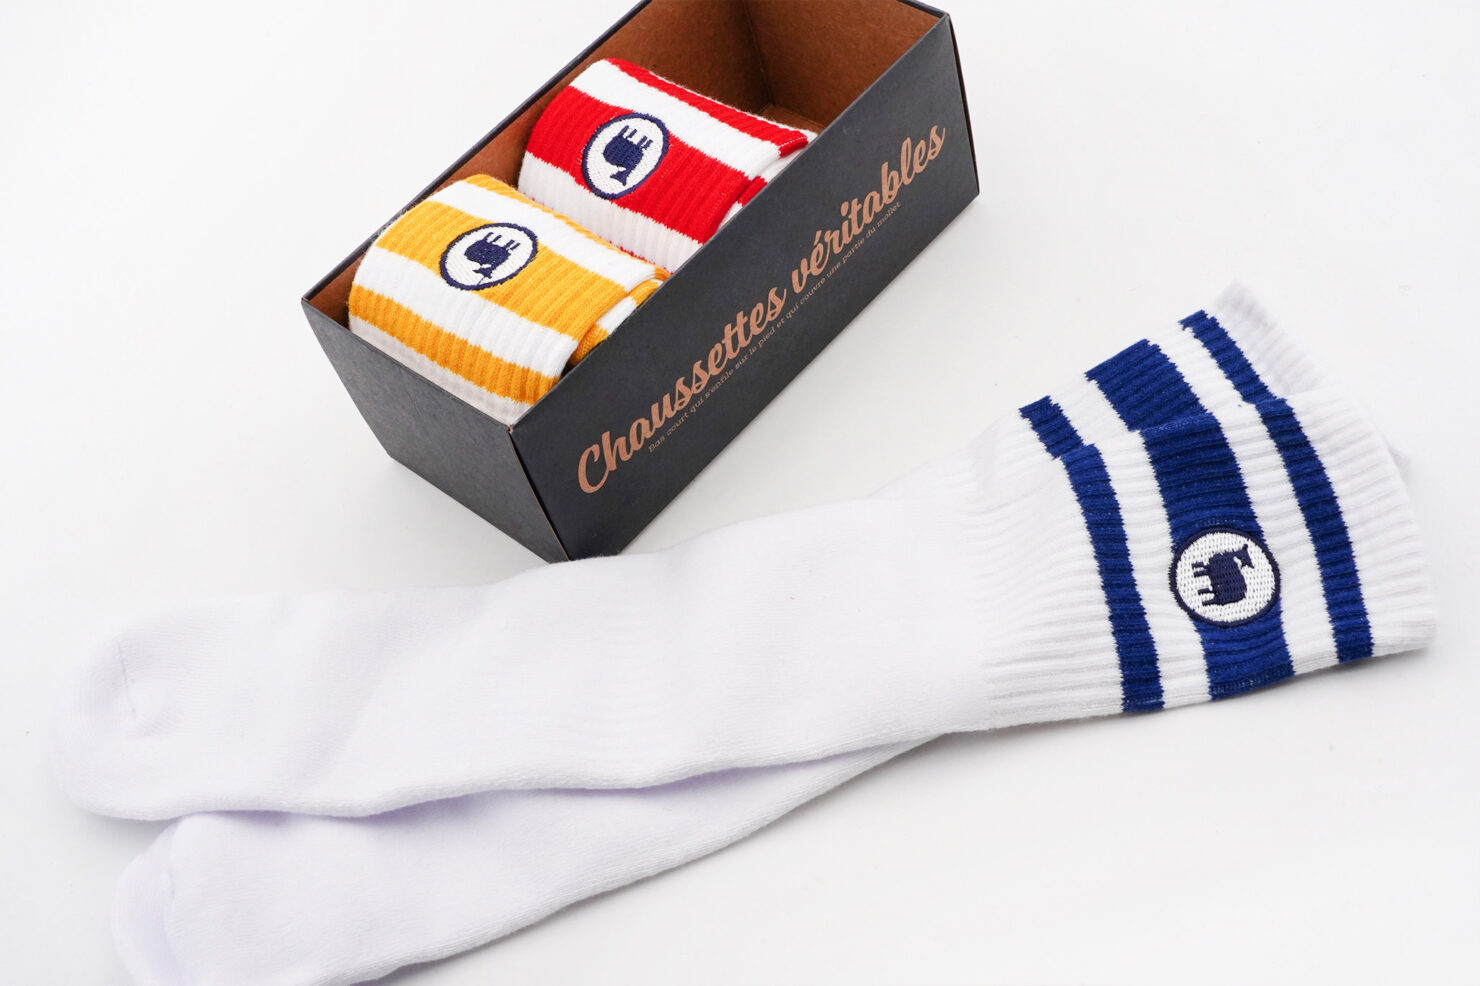 PACK OF 3 SOCKS - MAN SPORT - M. MOUSTACHE